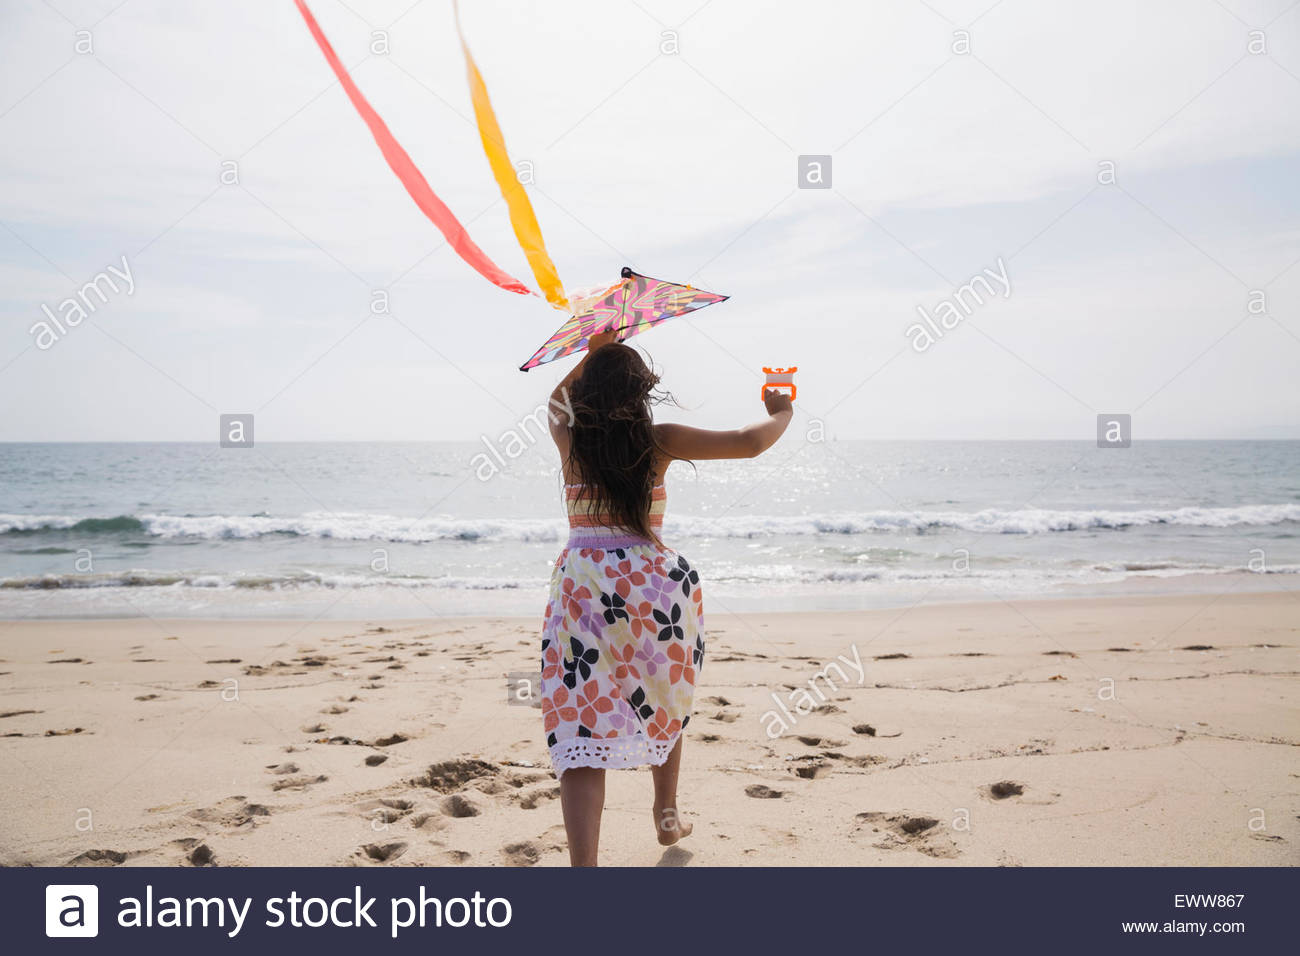 Girl in dress flying kite on sunny beach - Stock Image